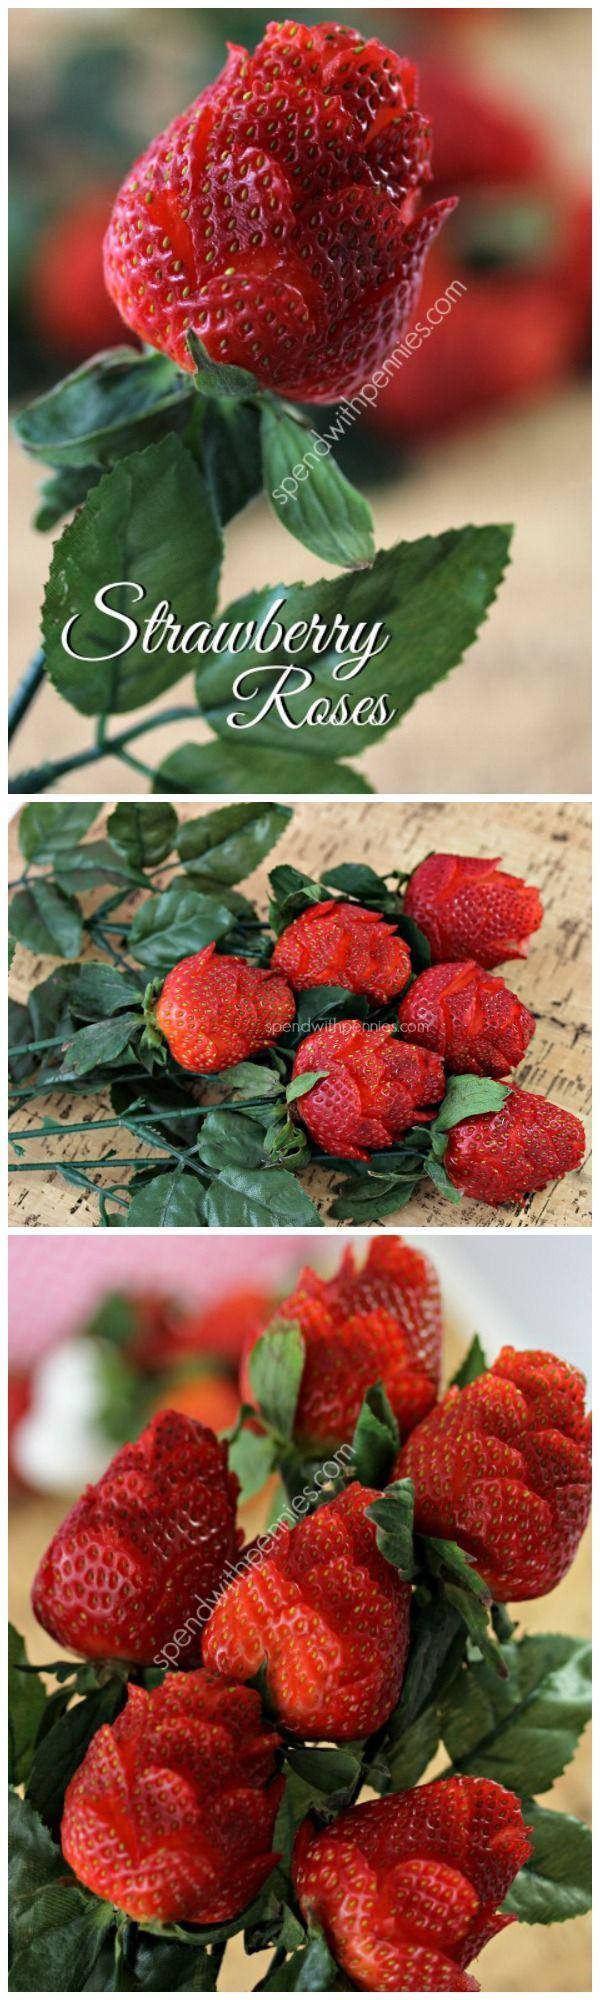 Strawberry Roses For Valentine's Day fruit strawberries valentines day food art…